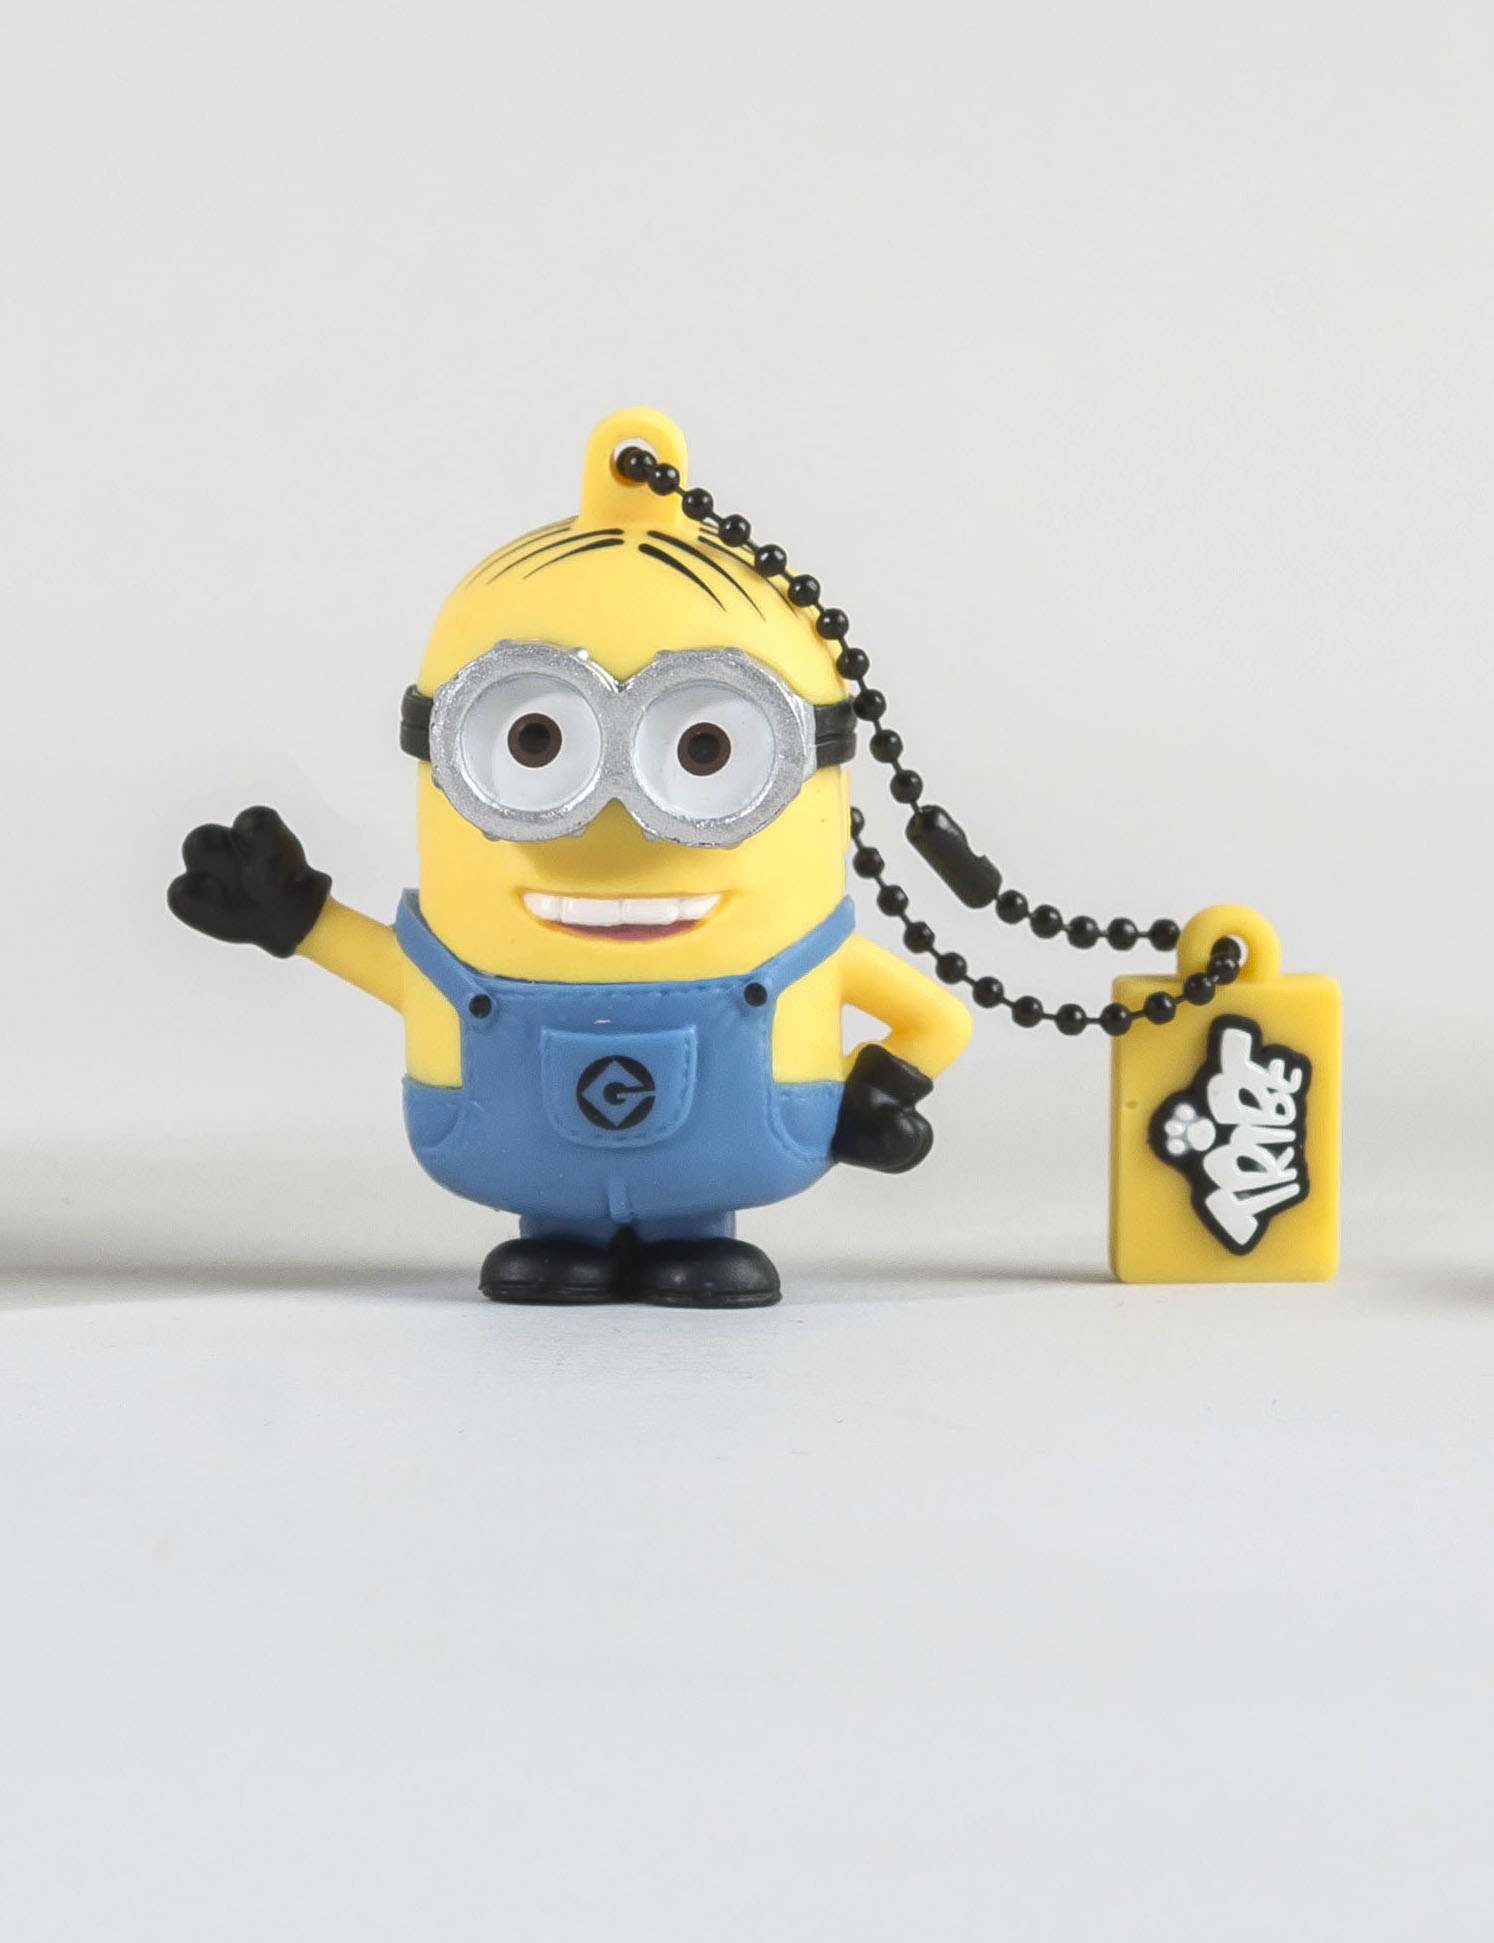 Moi moche et mechant cle usb minion dave 8 gb - Mechant minion ...